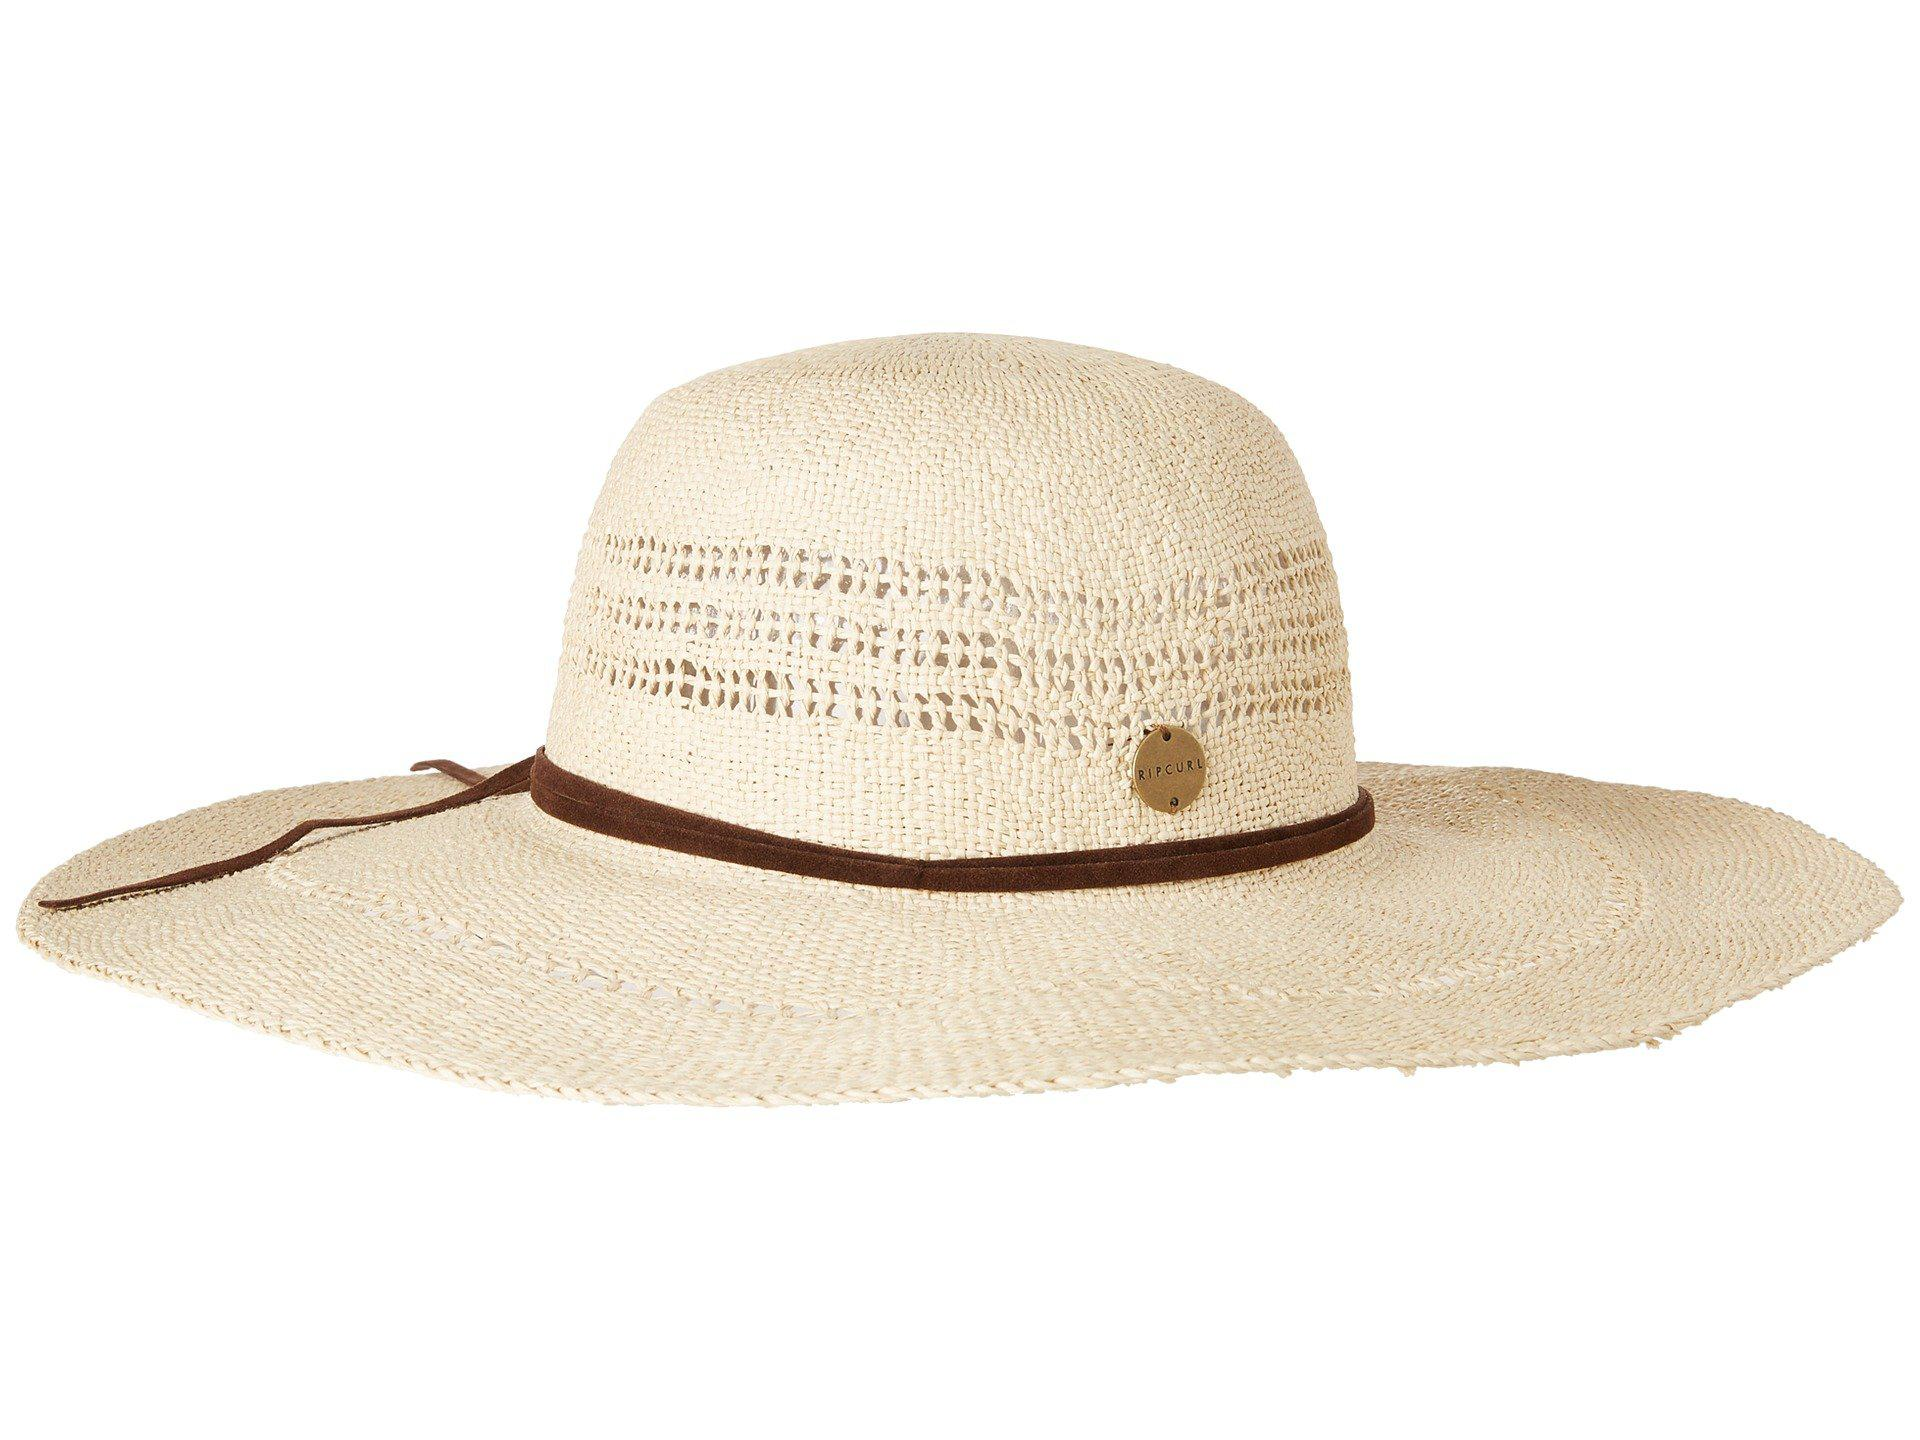 Lyst - Rip Curl Ritual Boho Hat in Natural 83155f997ee